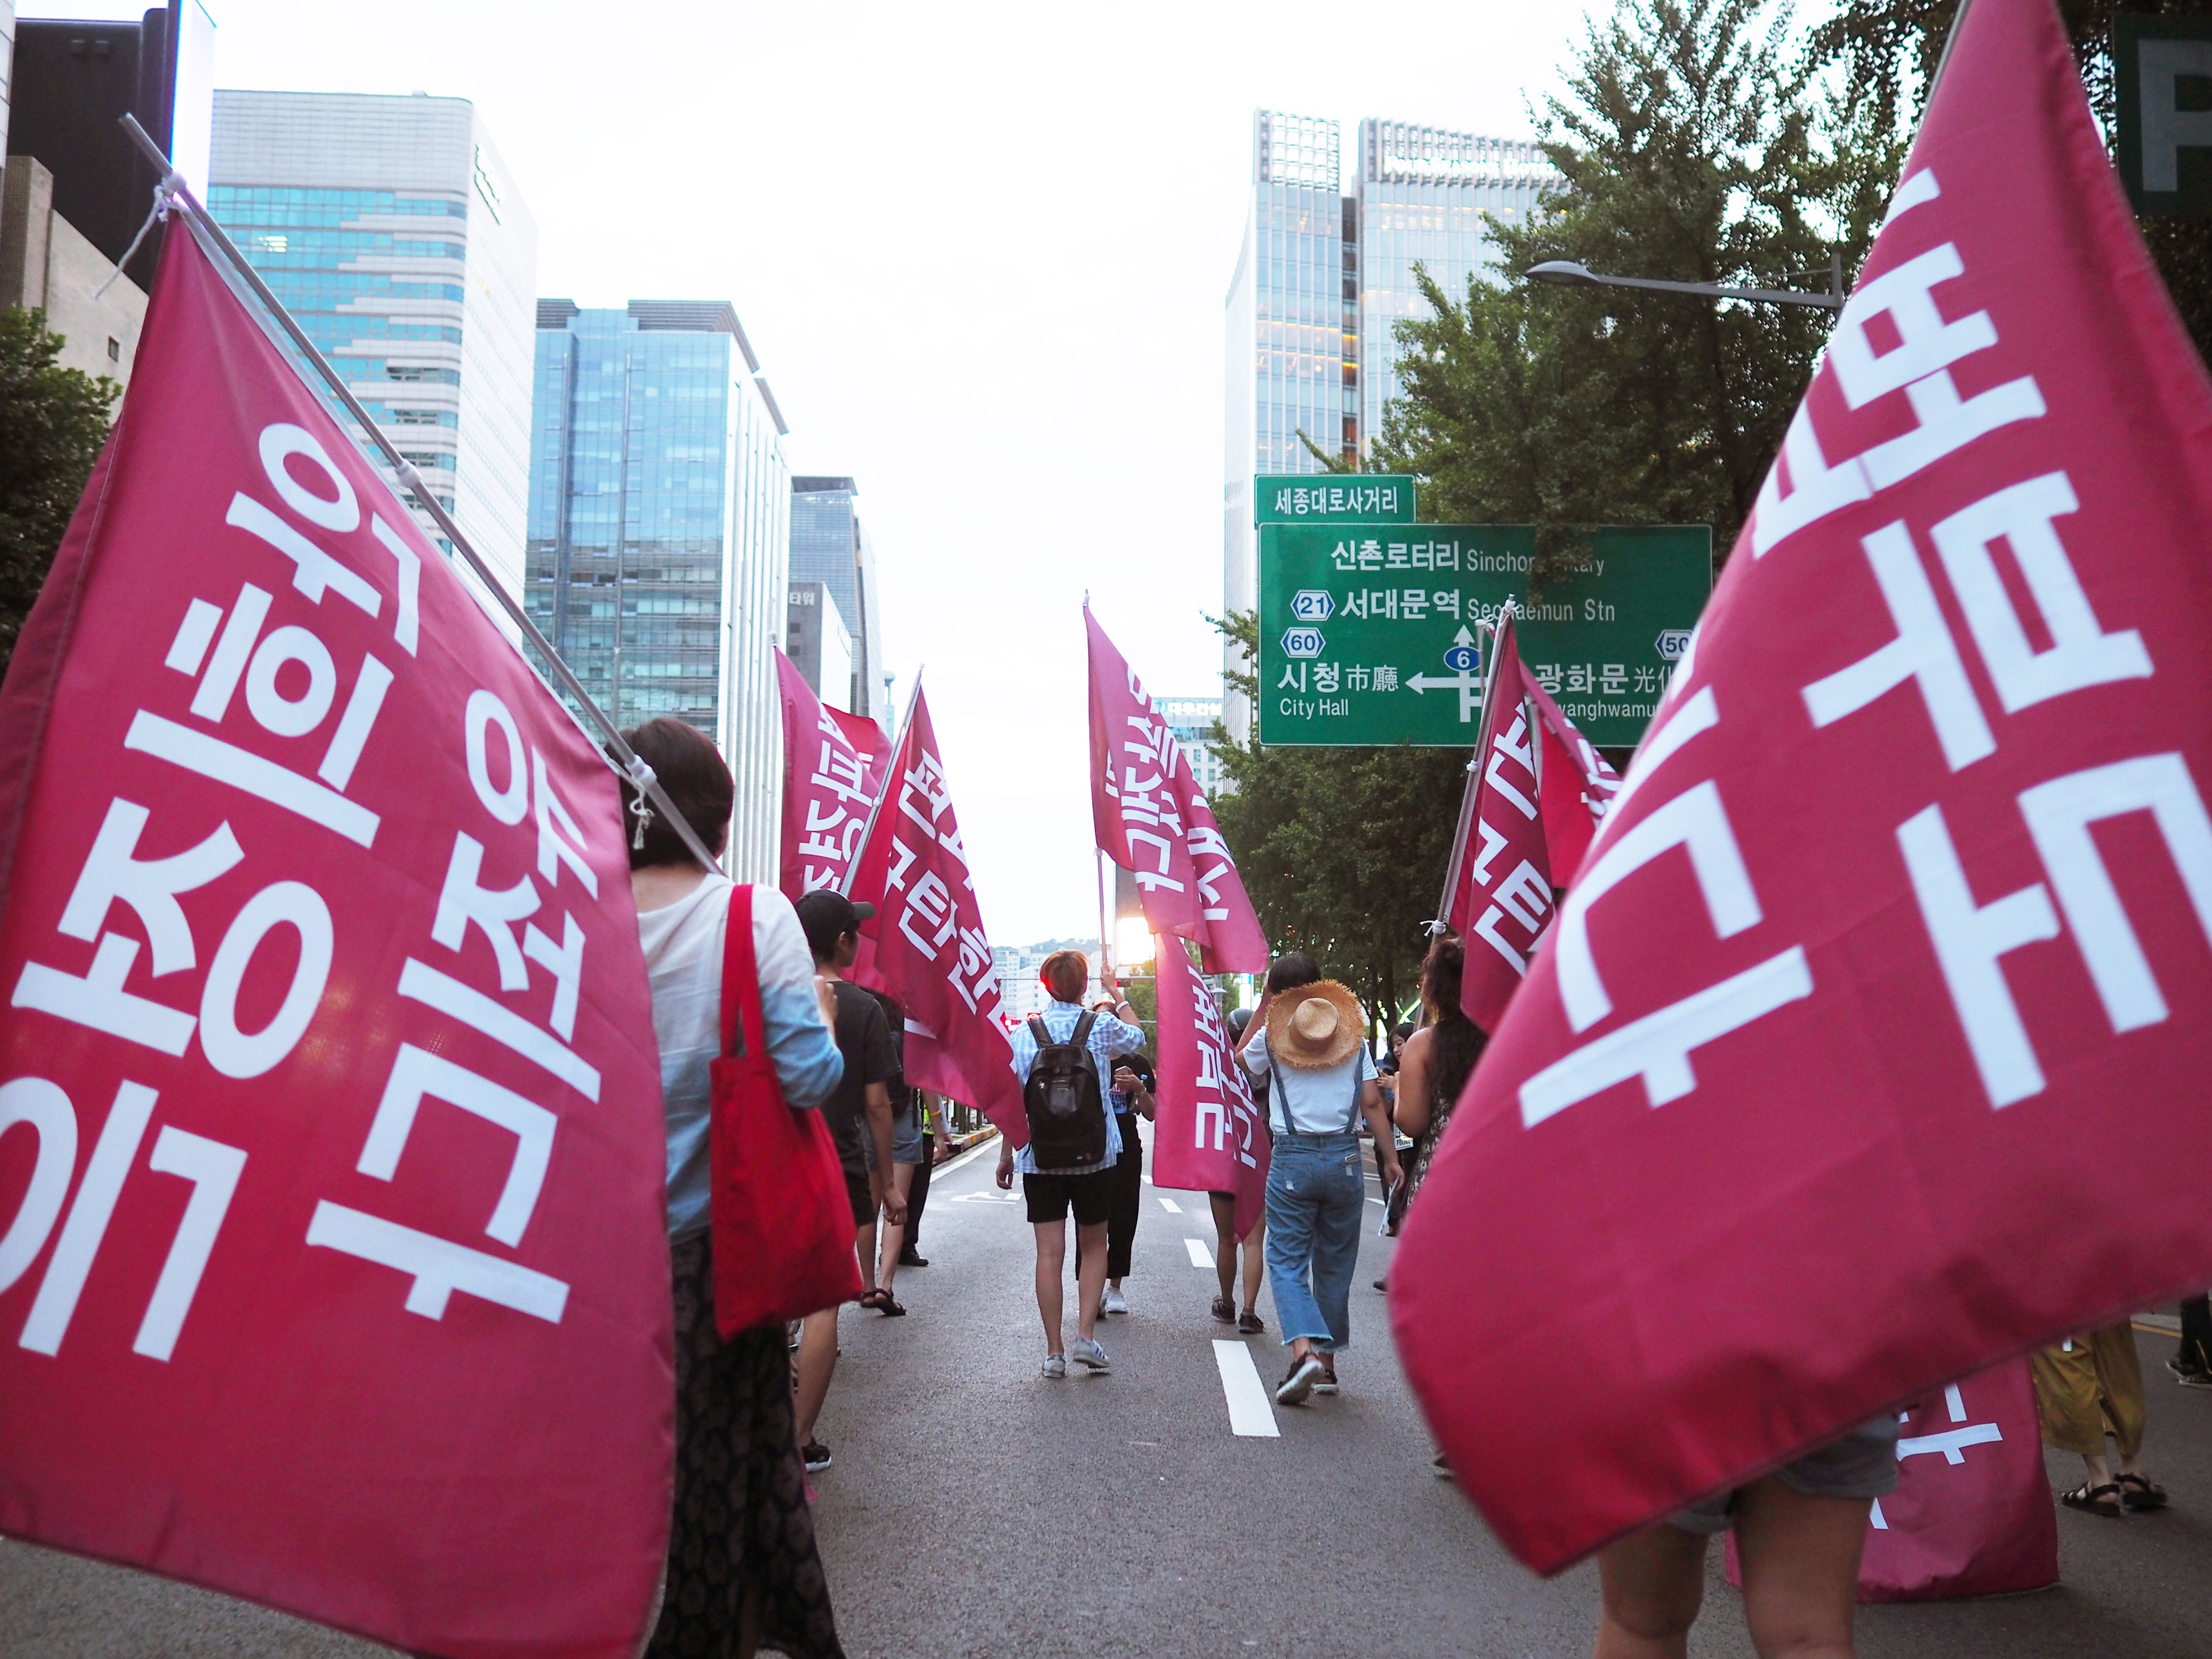 people on road with banners during daytime